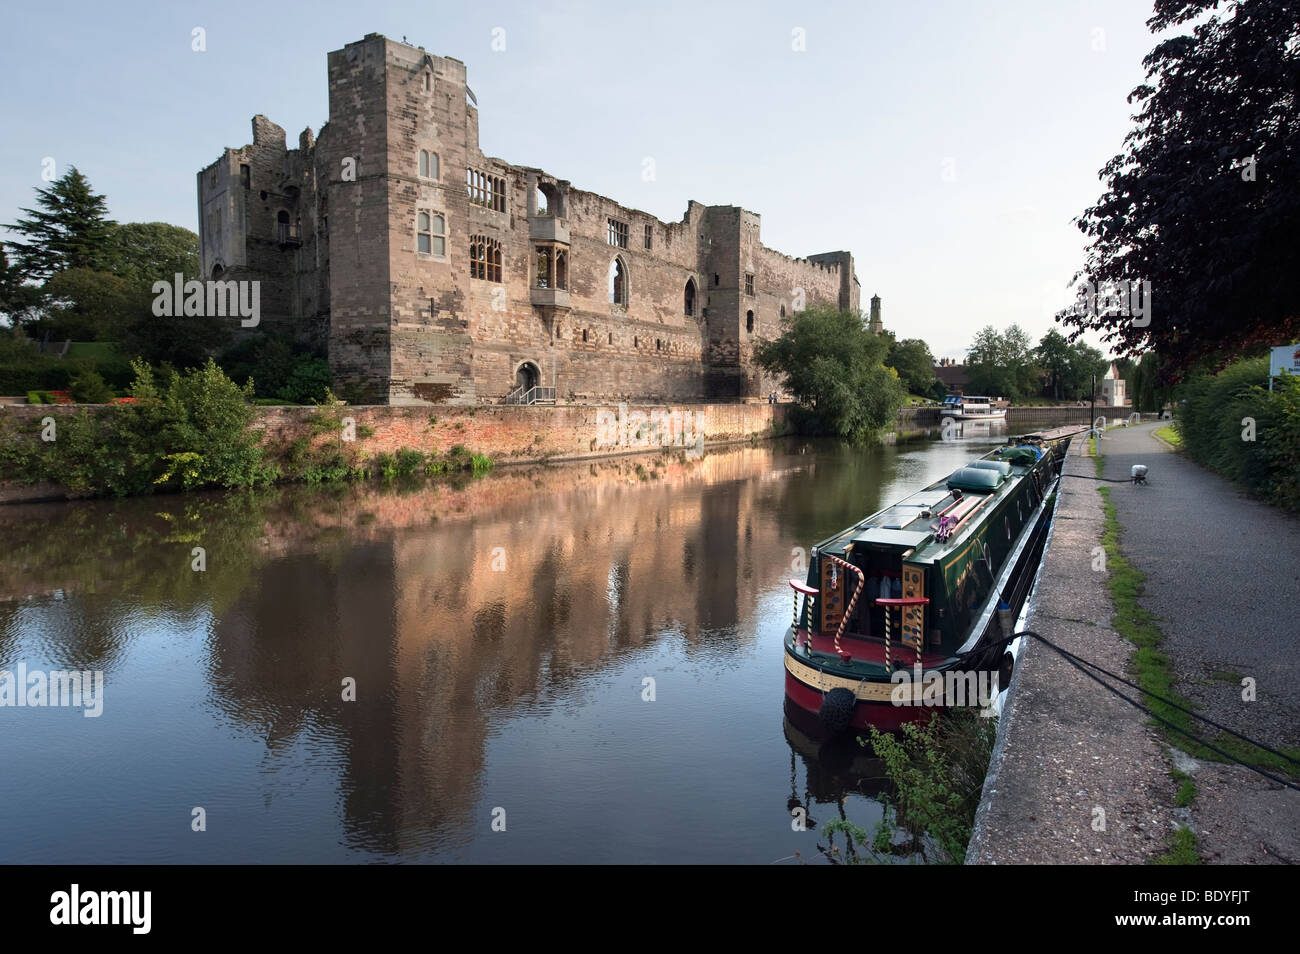 Newark Castle by the 'River Trent',Nottinghamshire,England,'United Kingdom','Great Britain',GB,UK,EU - Stock Image